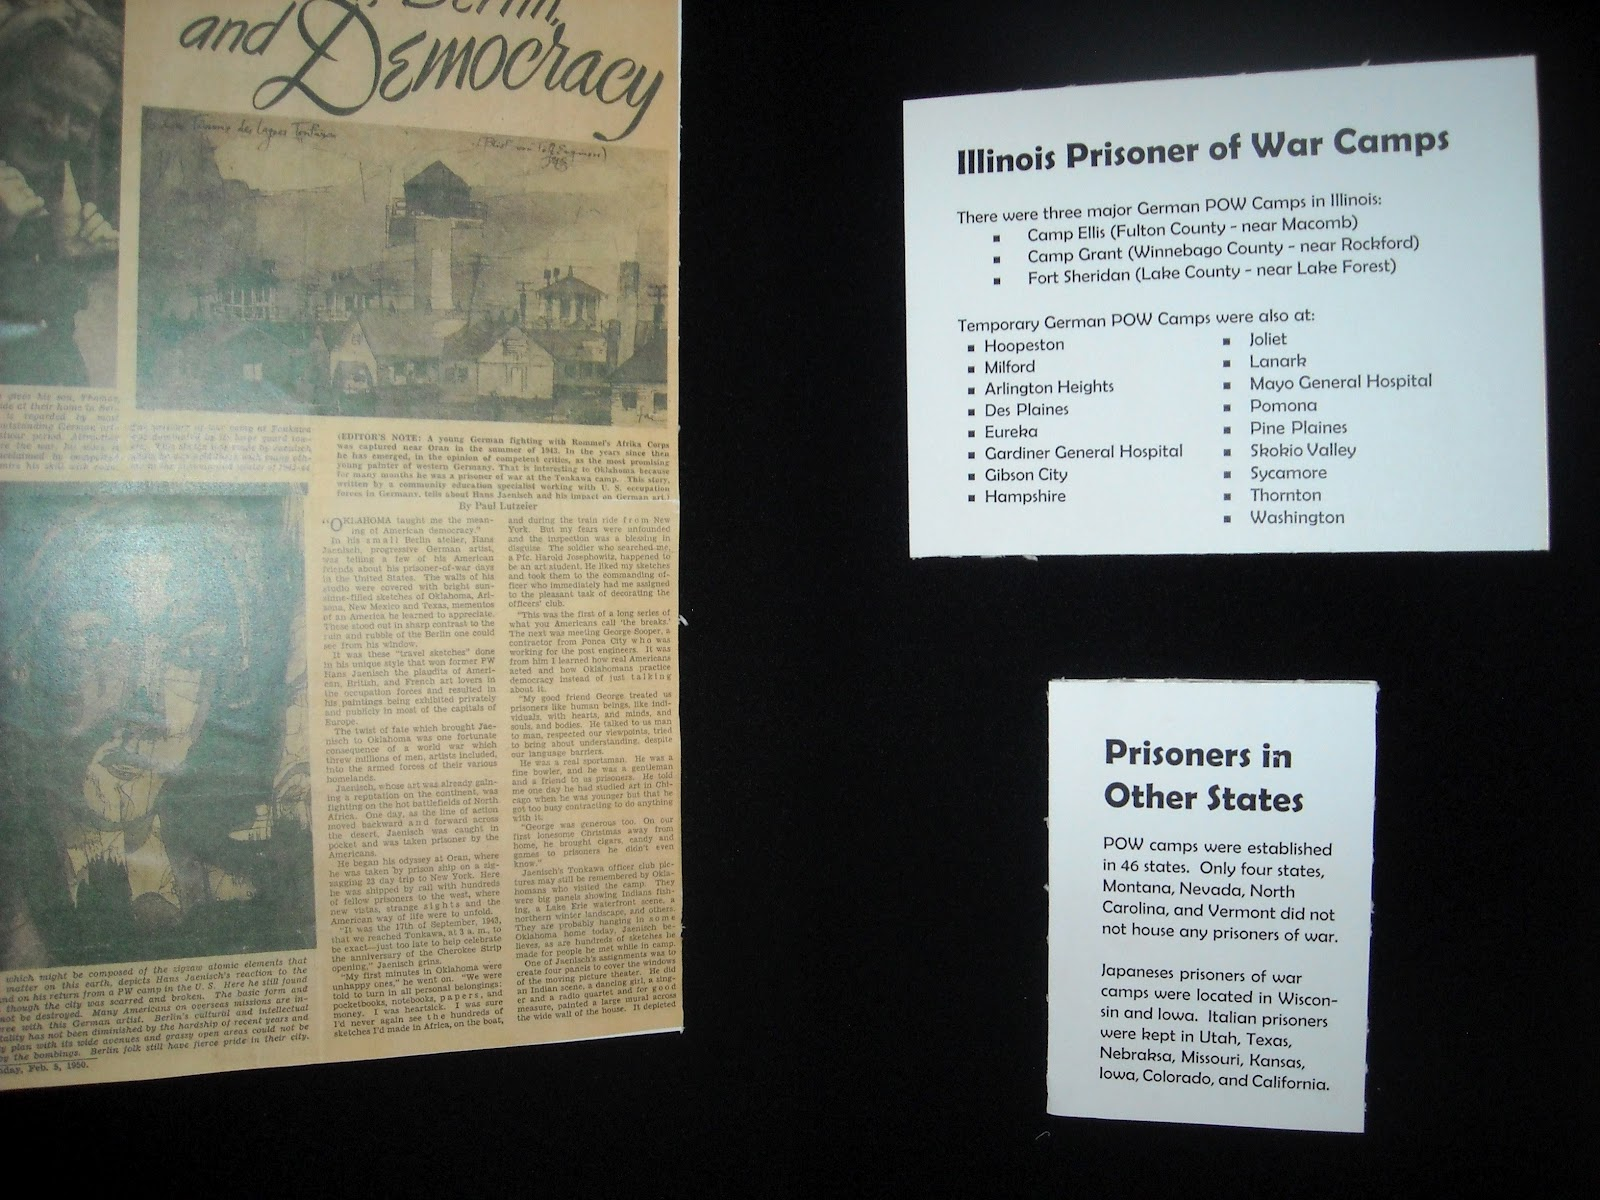 Illinois fulton county vermont - Illinois Had 3 Major German Prisoner Of War Camps Fort Sheridan Being One Of Them Wisconsin Had A Japanese Pow Camp